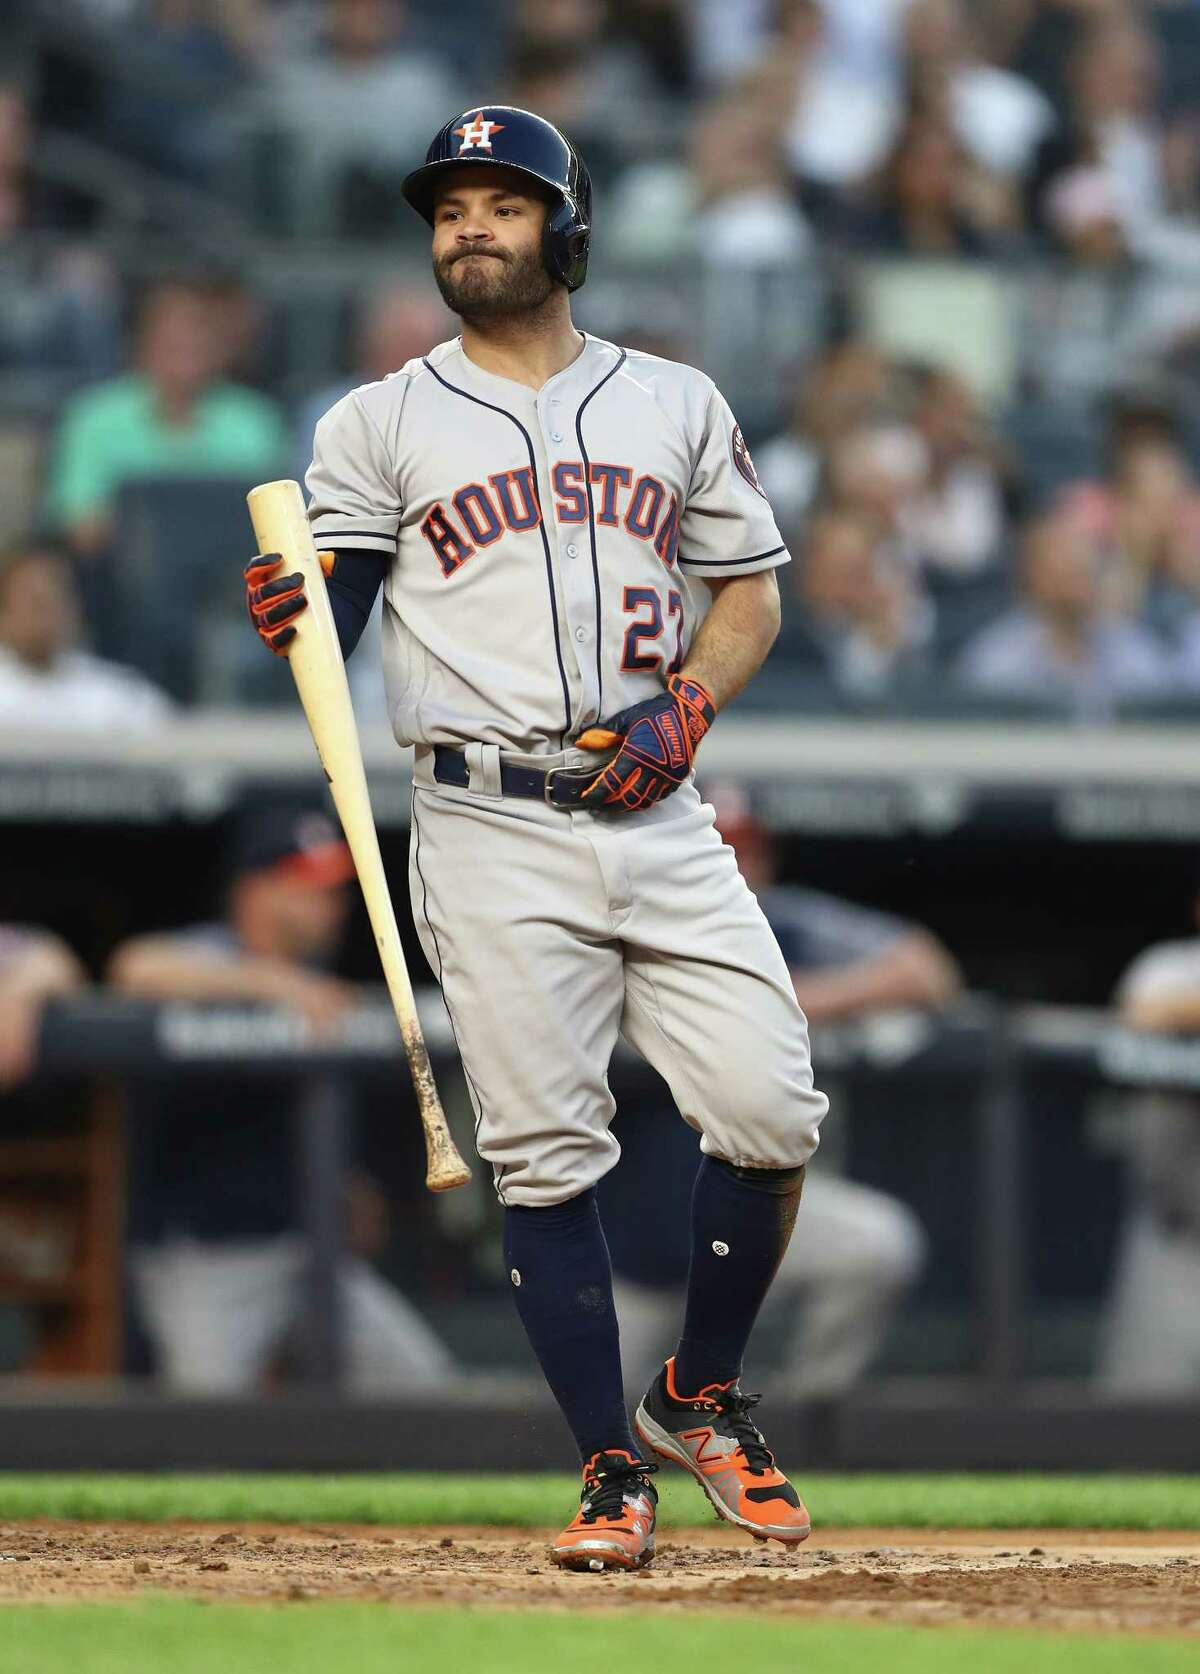 NEW YORK, NY - MAY 29: Jose Altuve #27 of the Houston Astros reacts after striking out against CC Sabathia #52 of the New York Yankees during their game at Yankee Stadium on May 29, 2018 in New York City.